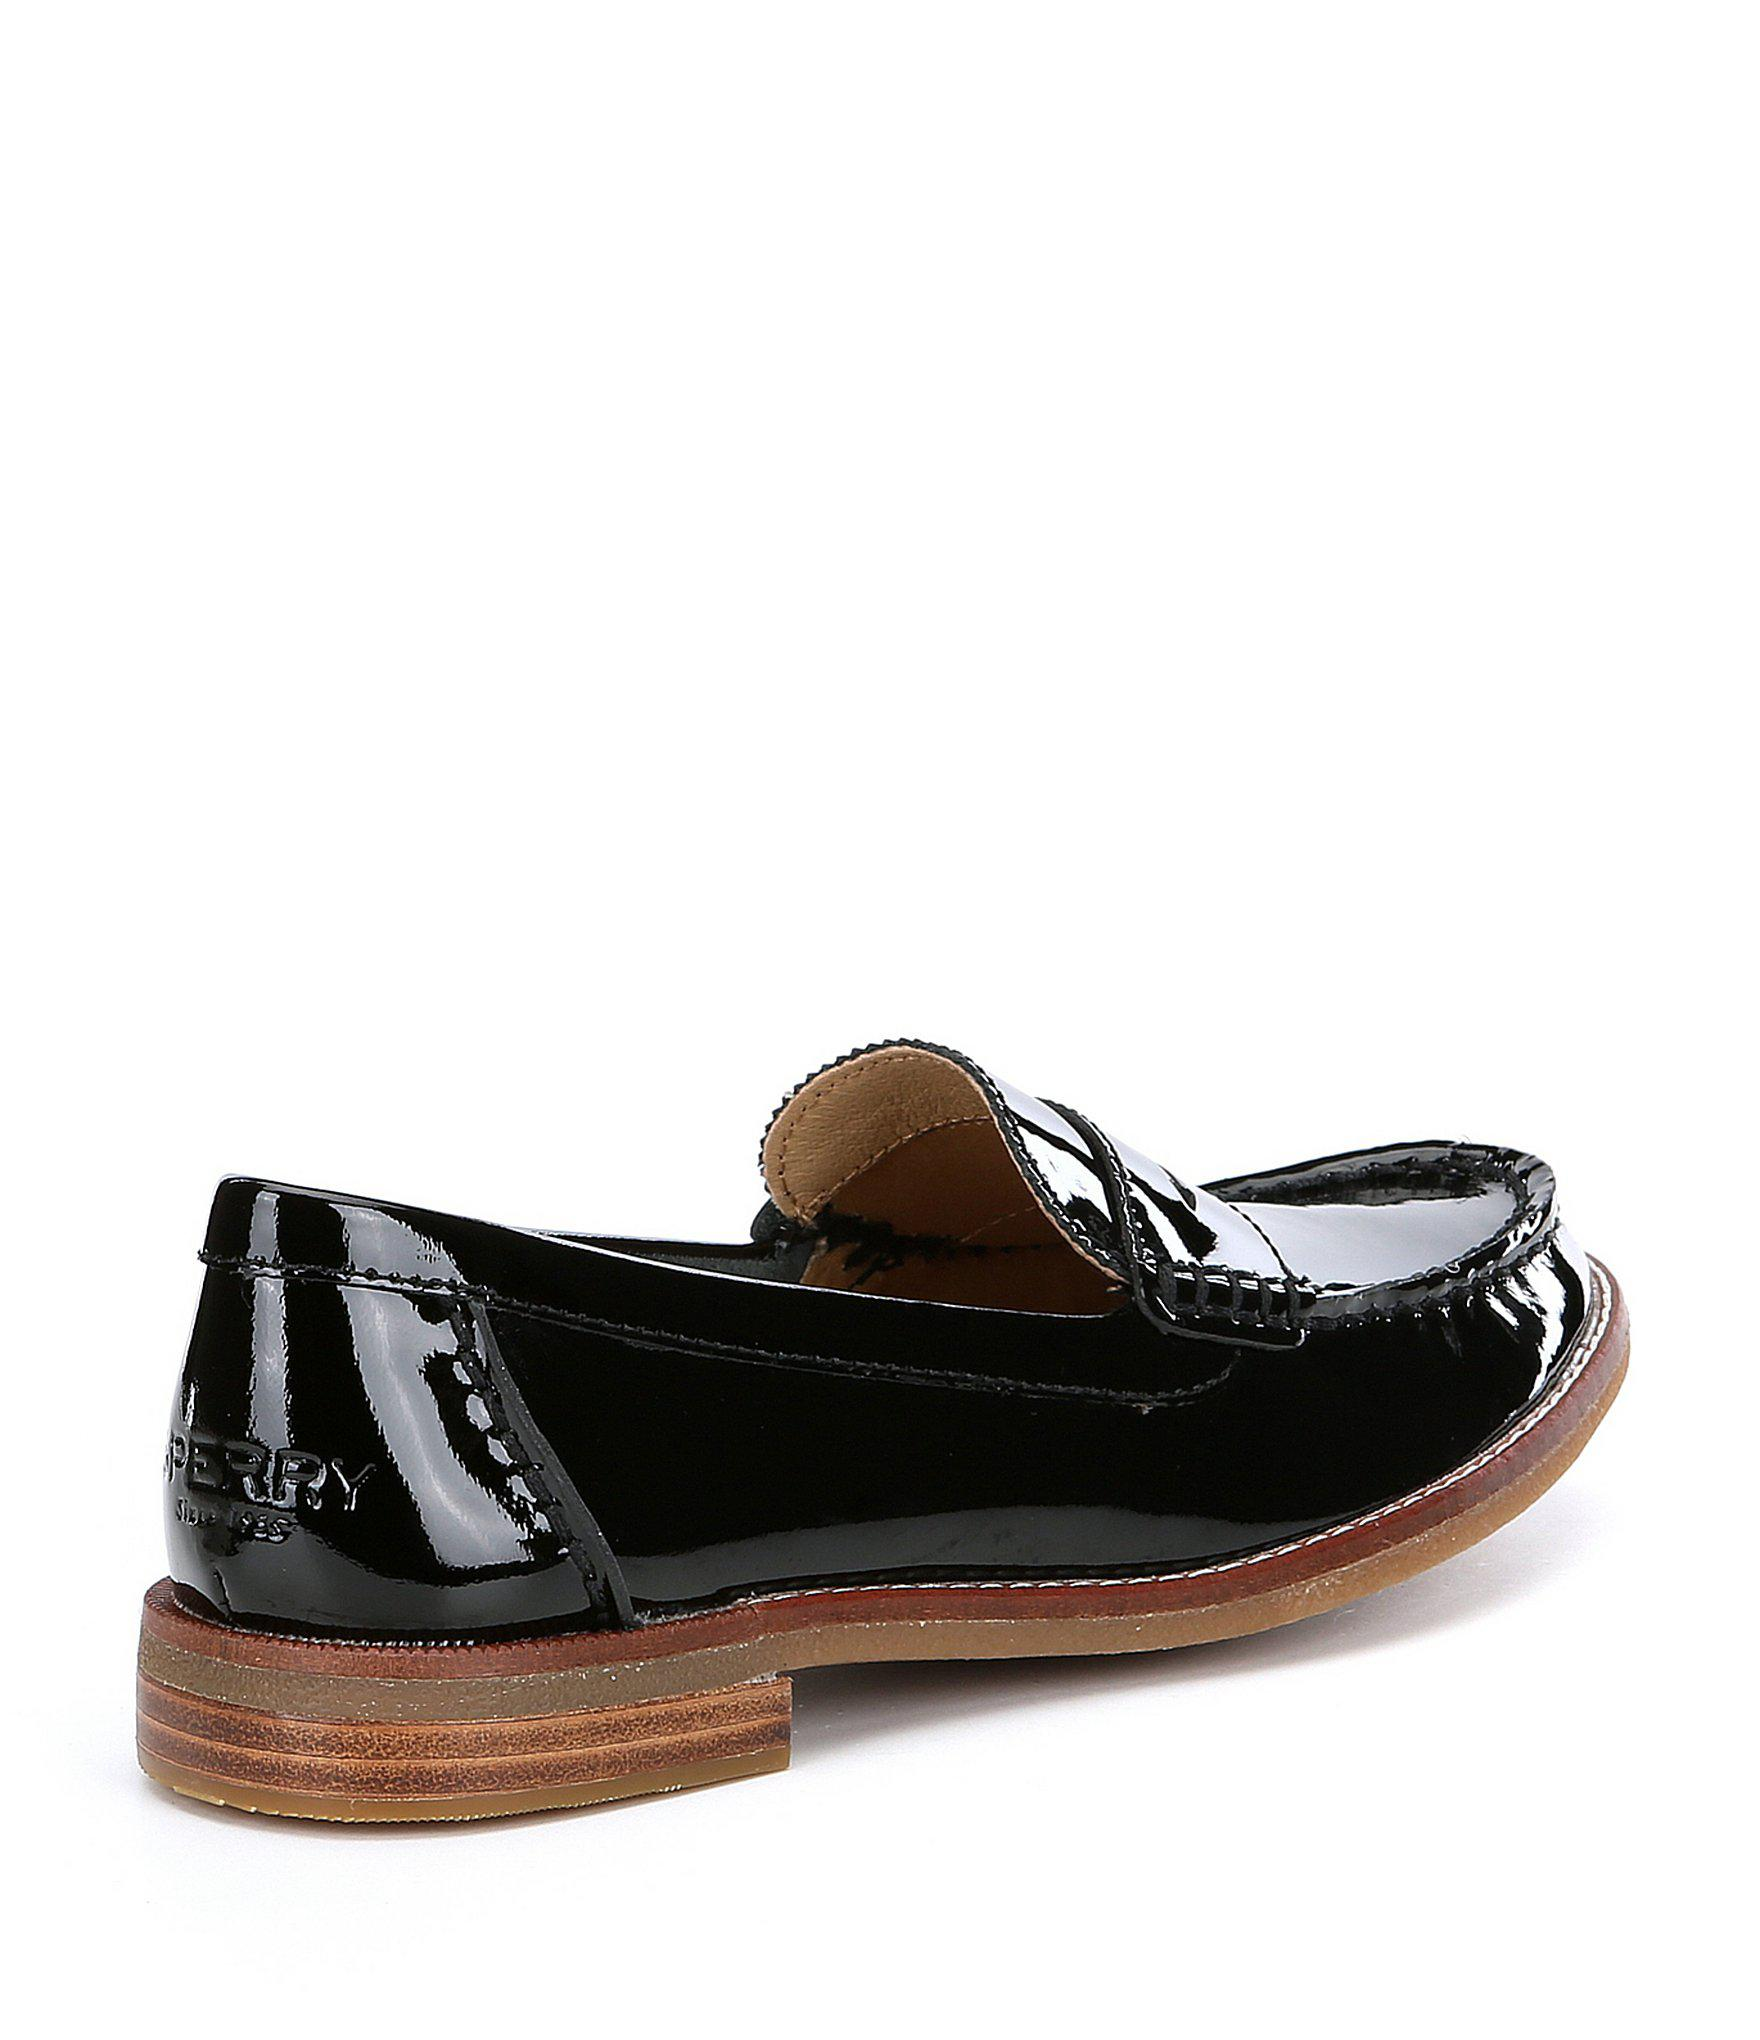 46355c2dd02 Lyst - Sperry Top-Sider Women s Seaport Penny Patent Leather Loafers ...